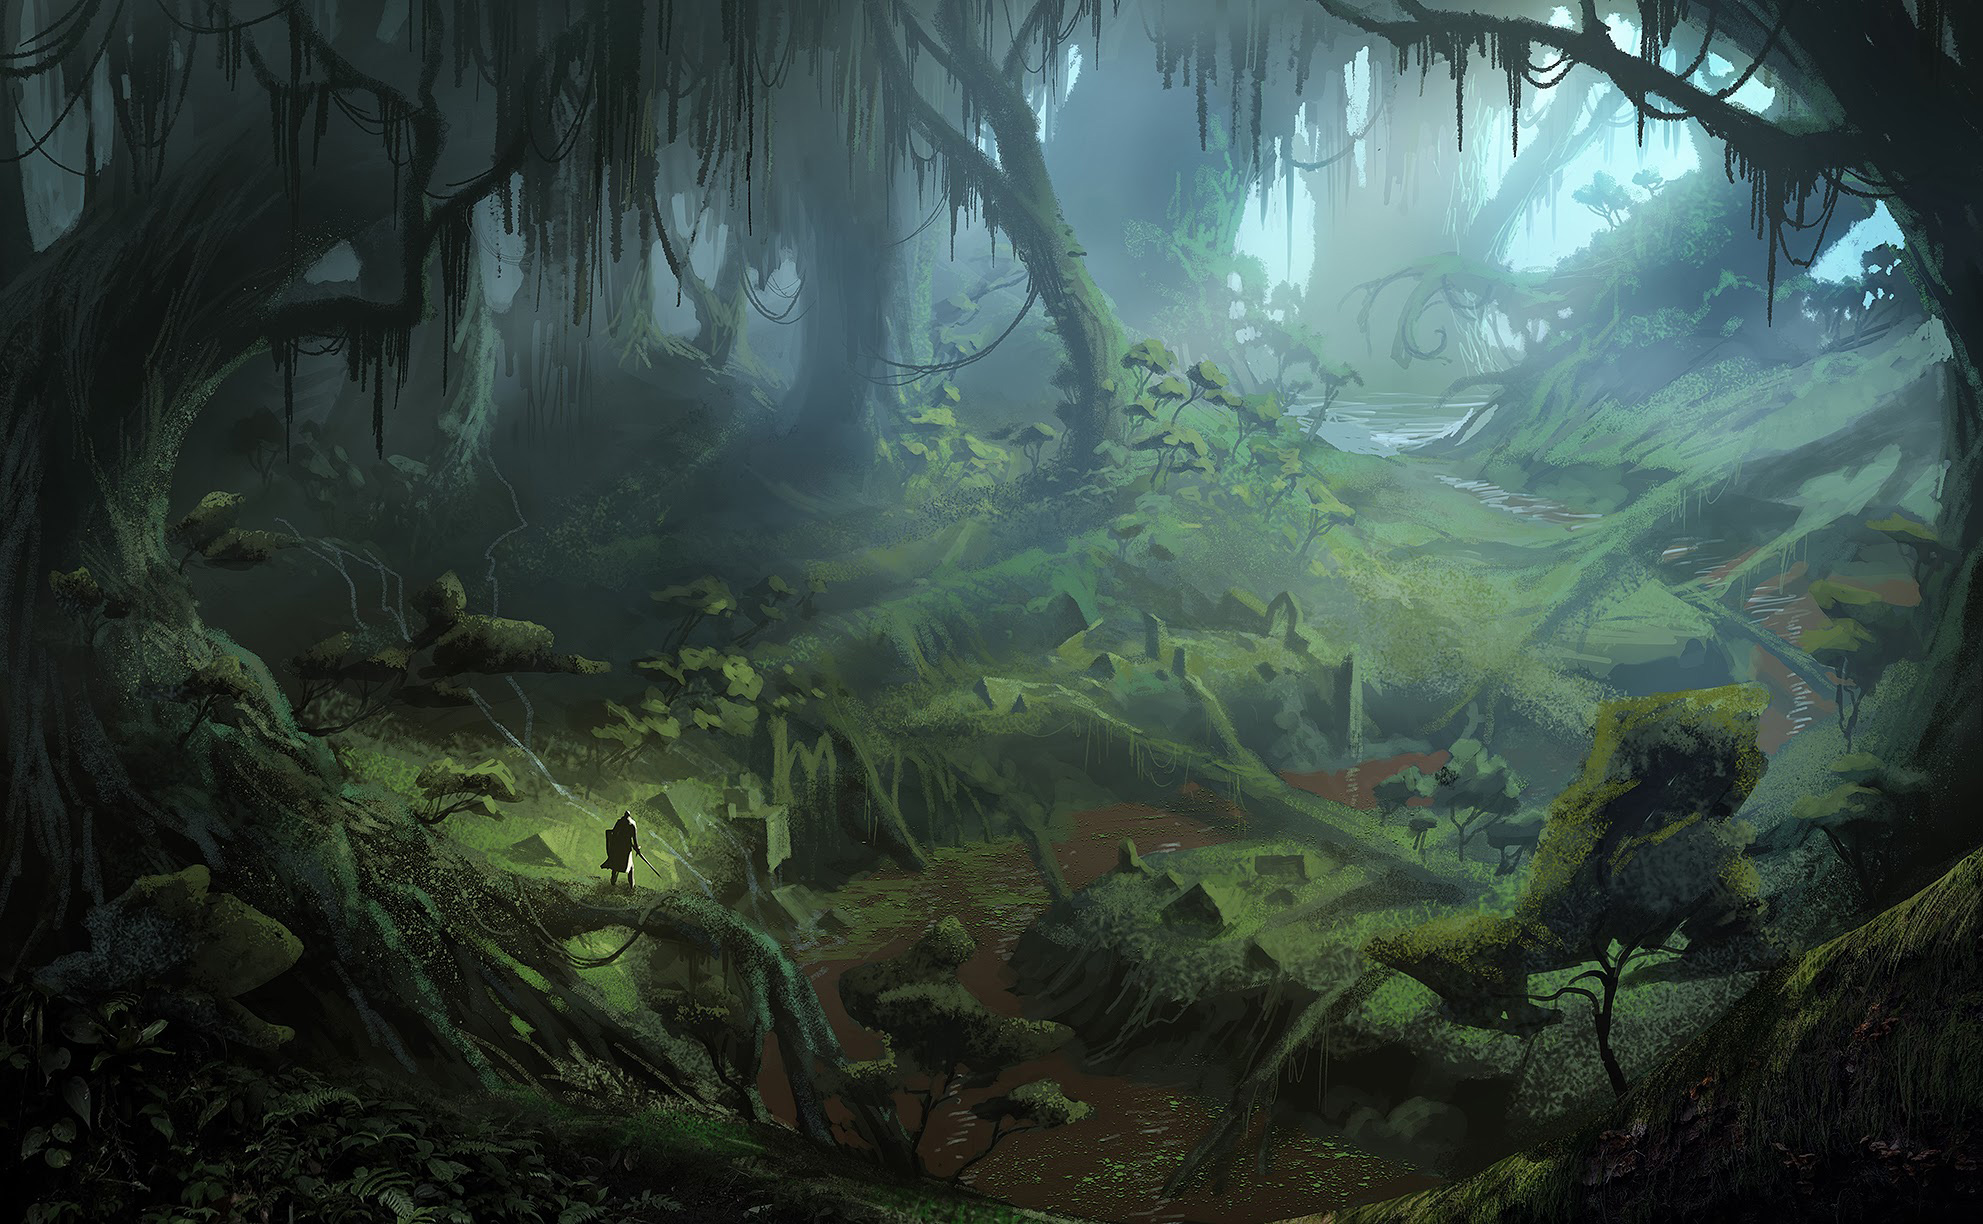 Dragon Age: Inquisition Environment Concept Art | Concept ...